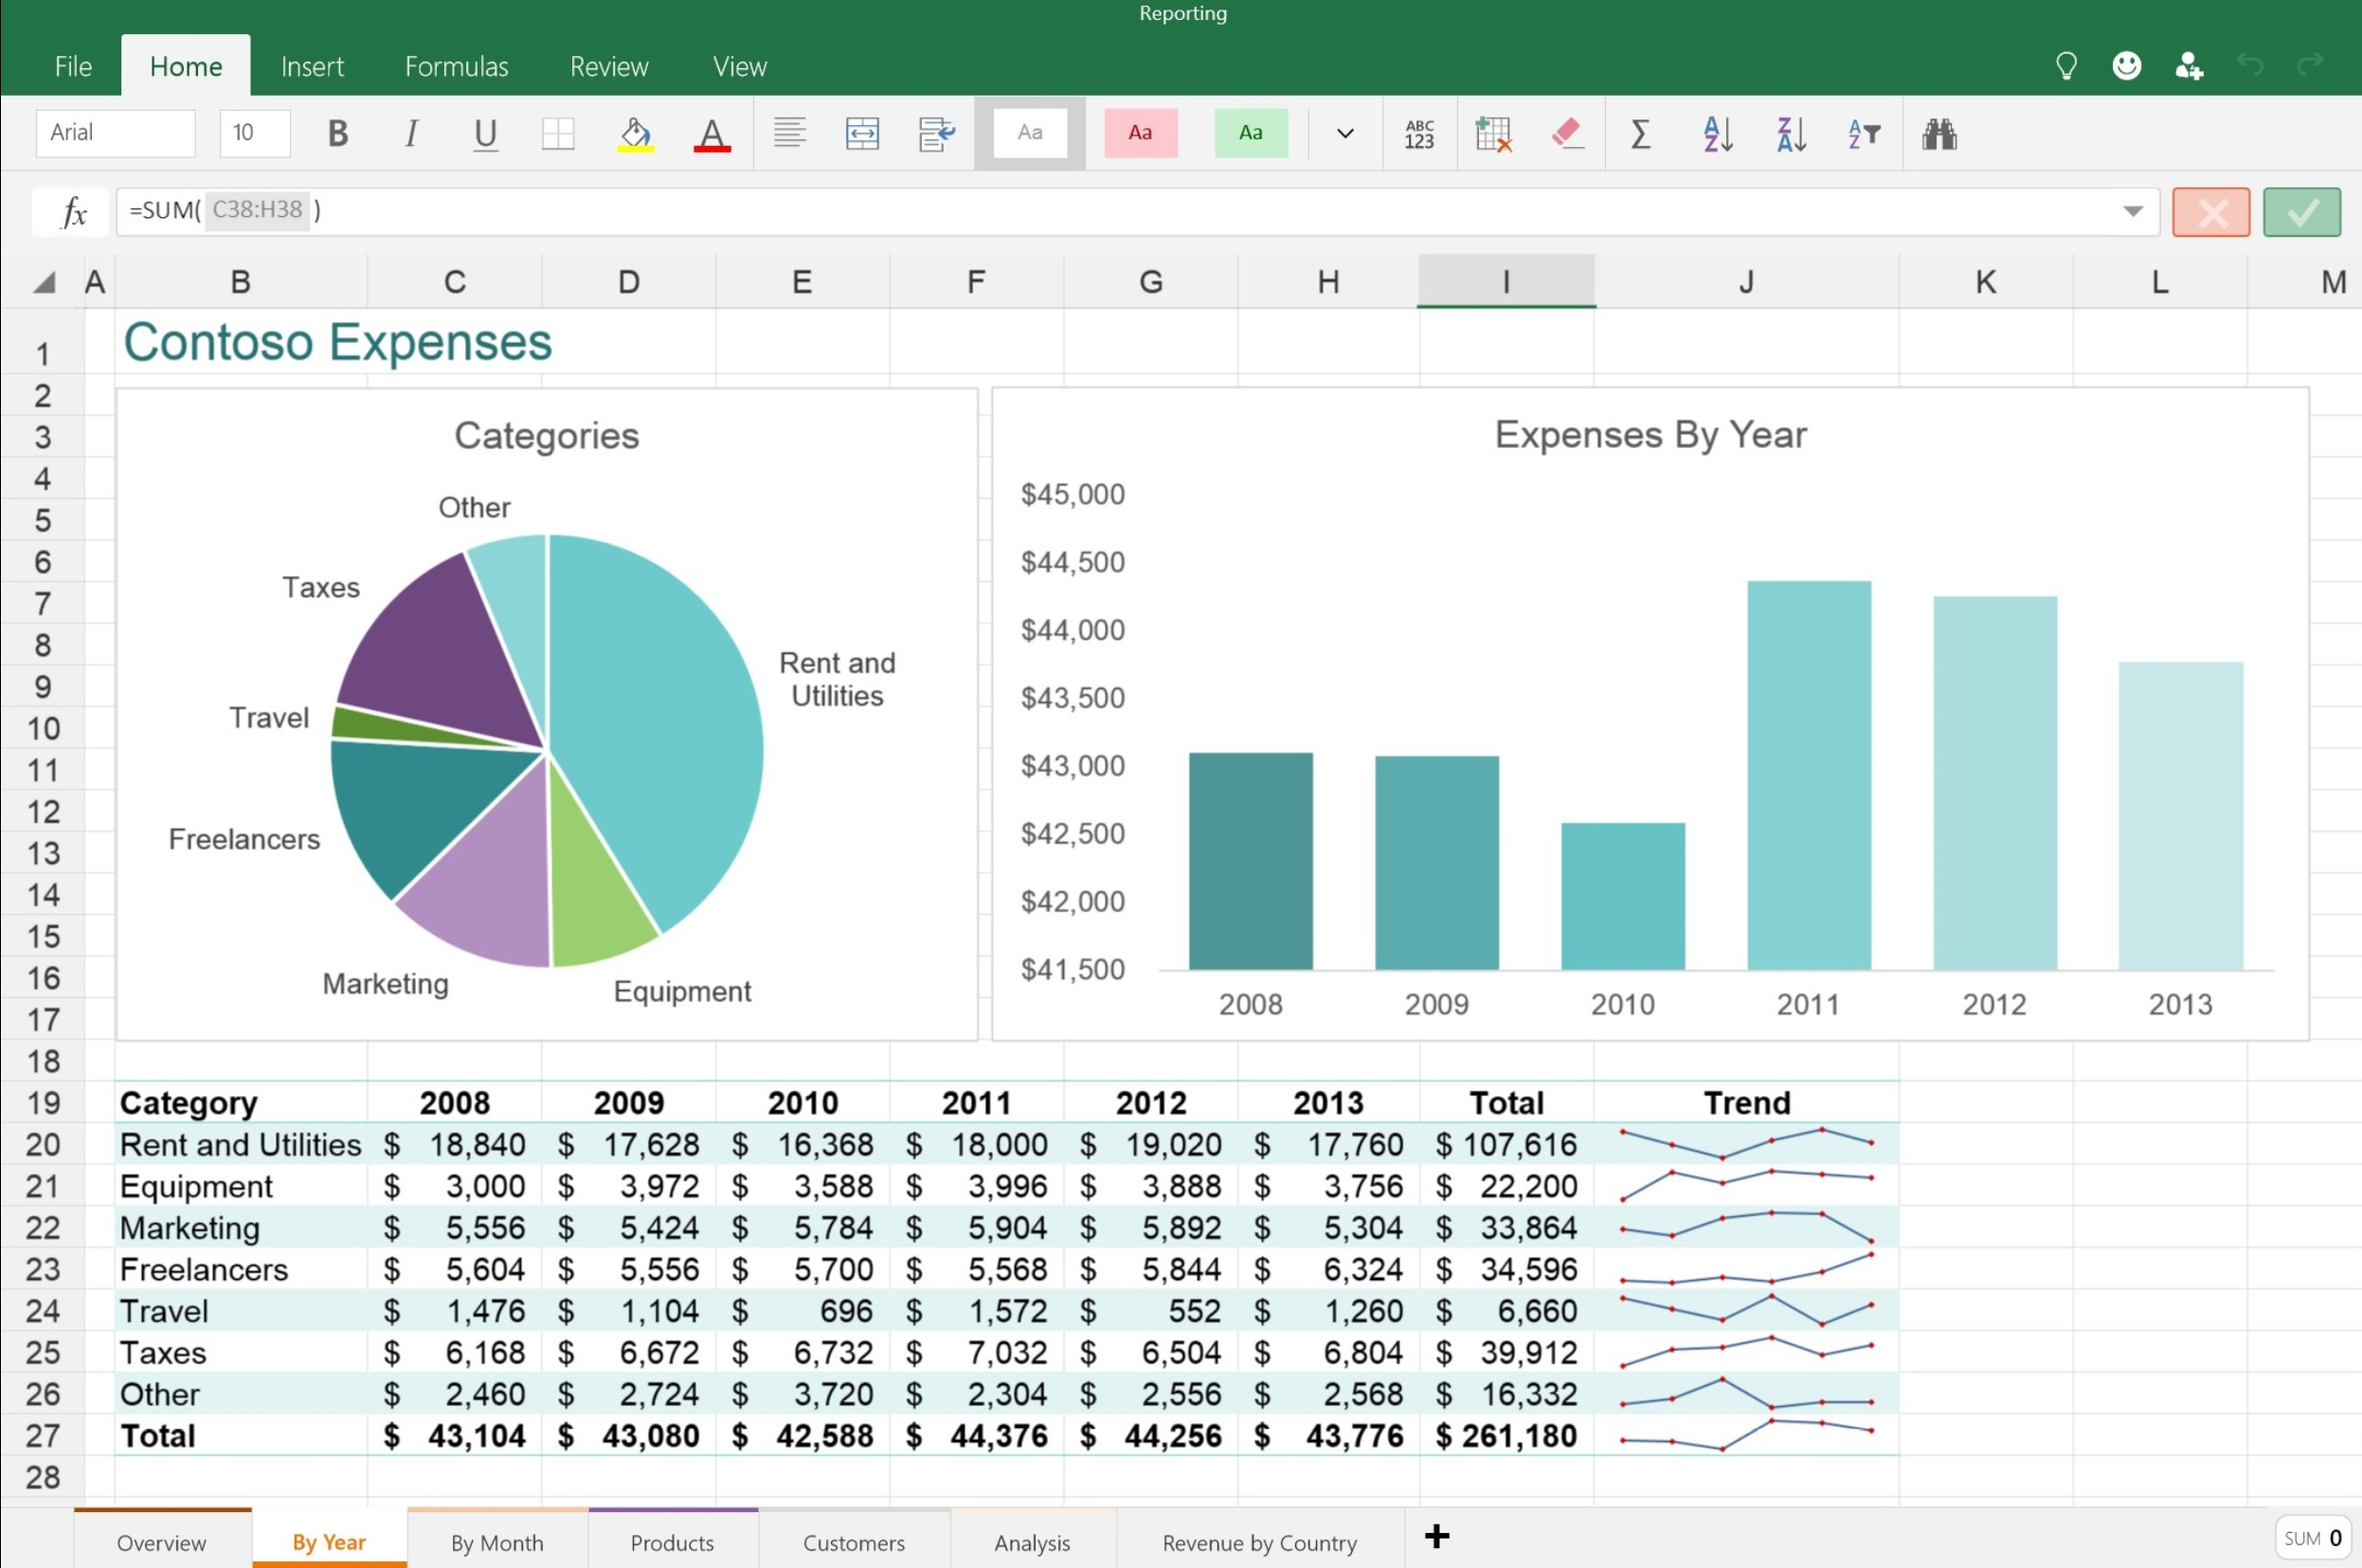 Ediblewildsus  Winning Features Available In The New Word Excel And Powerpoint Apps For  With Fascinating Excel Touch App  With Cute Excel Average Percentage Also Excel Activecelloffset In Addition Excel  Conditional Formatting And Excel Vba Select Multiple Rows As Well As How To Make A Excel Chart Additionally Access Export Query To Excel From Mspowerusercom With Ediblewildsus  Fascinating Features Available In The New Word Excel And Powerpoint Apps For  With Cute Excel Touch App  And Winning Excel Average Percentage Also Excel Activecelloffset In Addition Excel  Conditional Formatting From Mspowerusercom